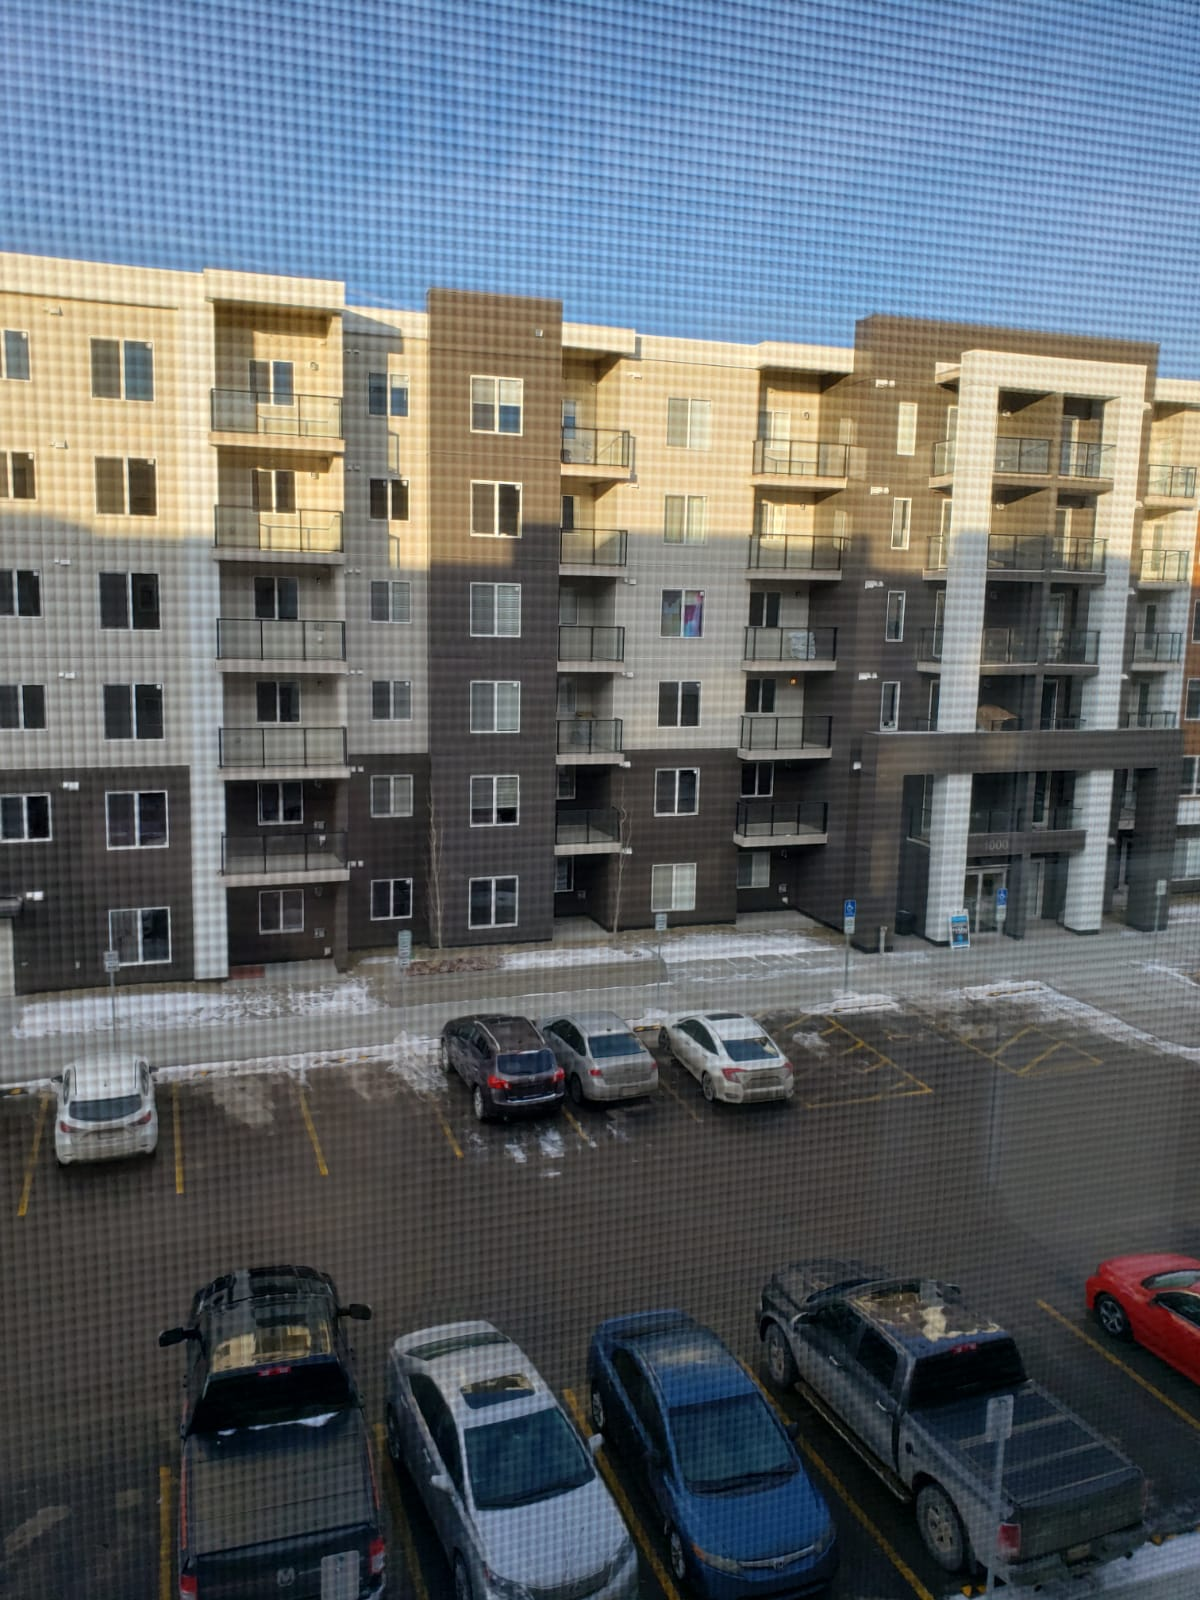 LESS THEN 1 YR OLD! 2 BDRMS, 2 BATH, 3RD FLOOR APARTMENT IN SKYVIEW!